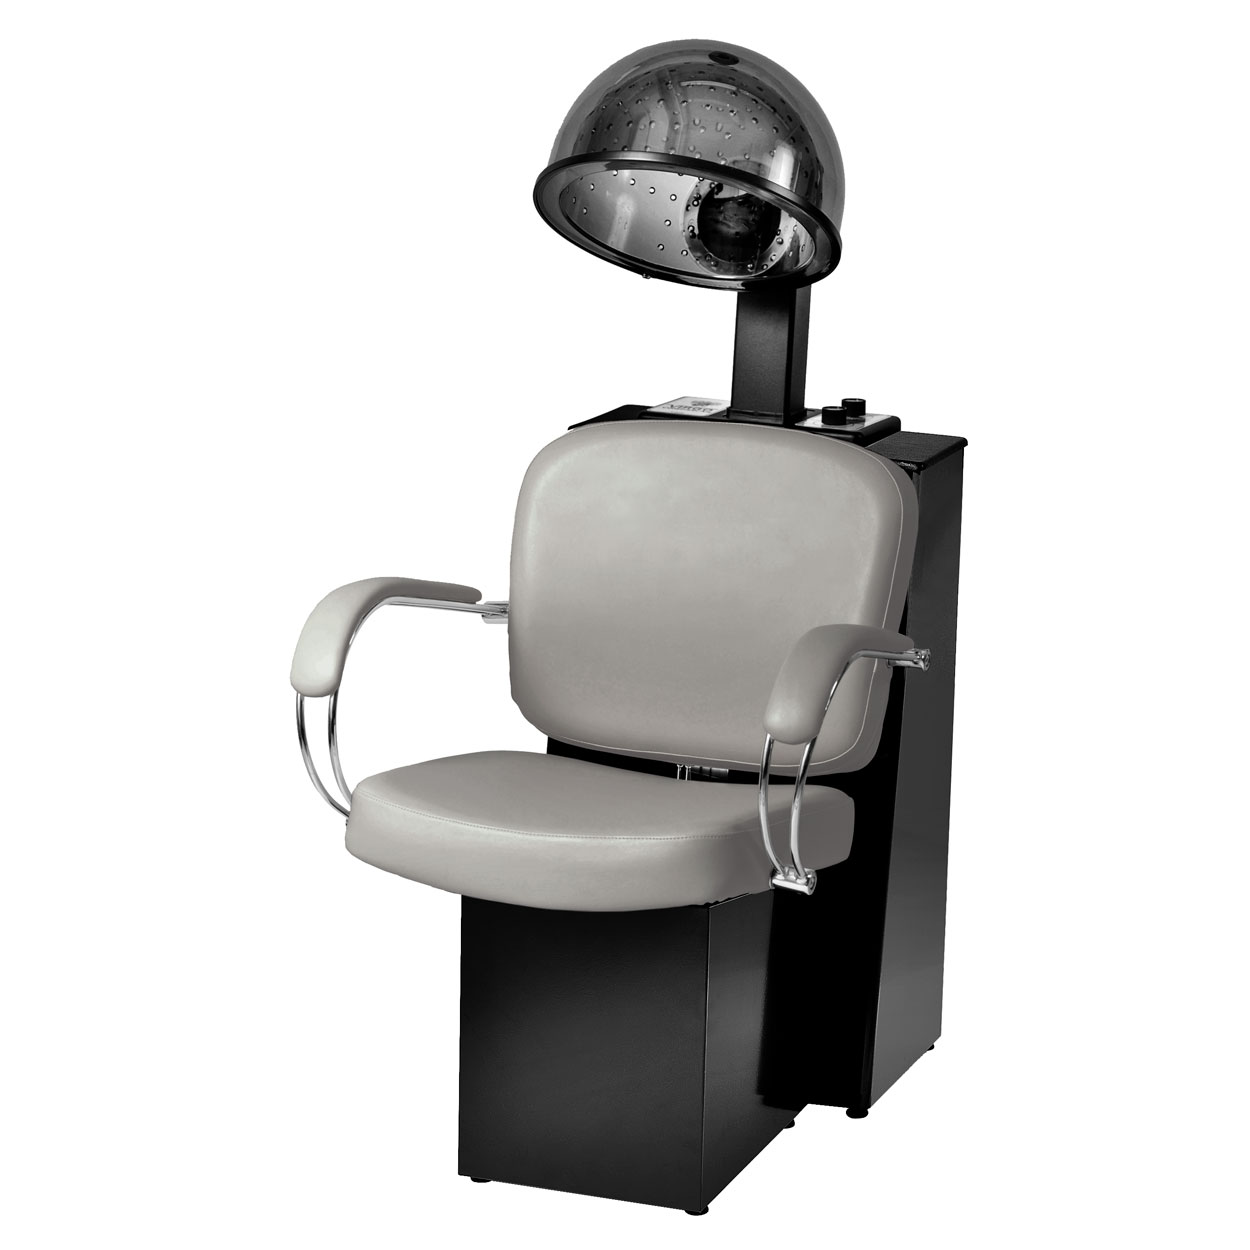 Pibbs 3969 Latina Salon Hair Dryer Chair With Hooded Dryer  main product image